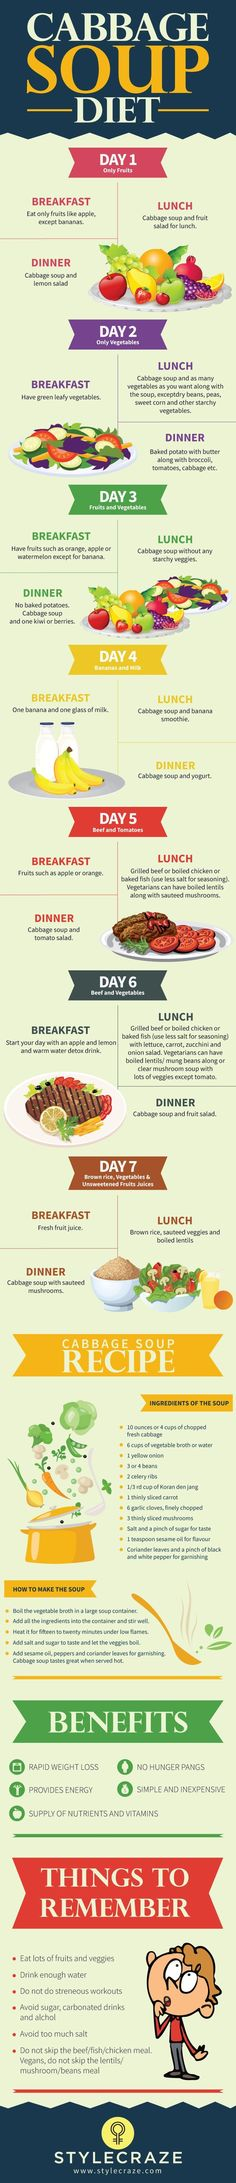 cool Cabbage Soup Diet For Rapid Weight Loss Diet System Losing Weight http://the3weekdietloseweightfast.blogspot.com